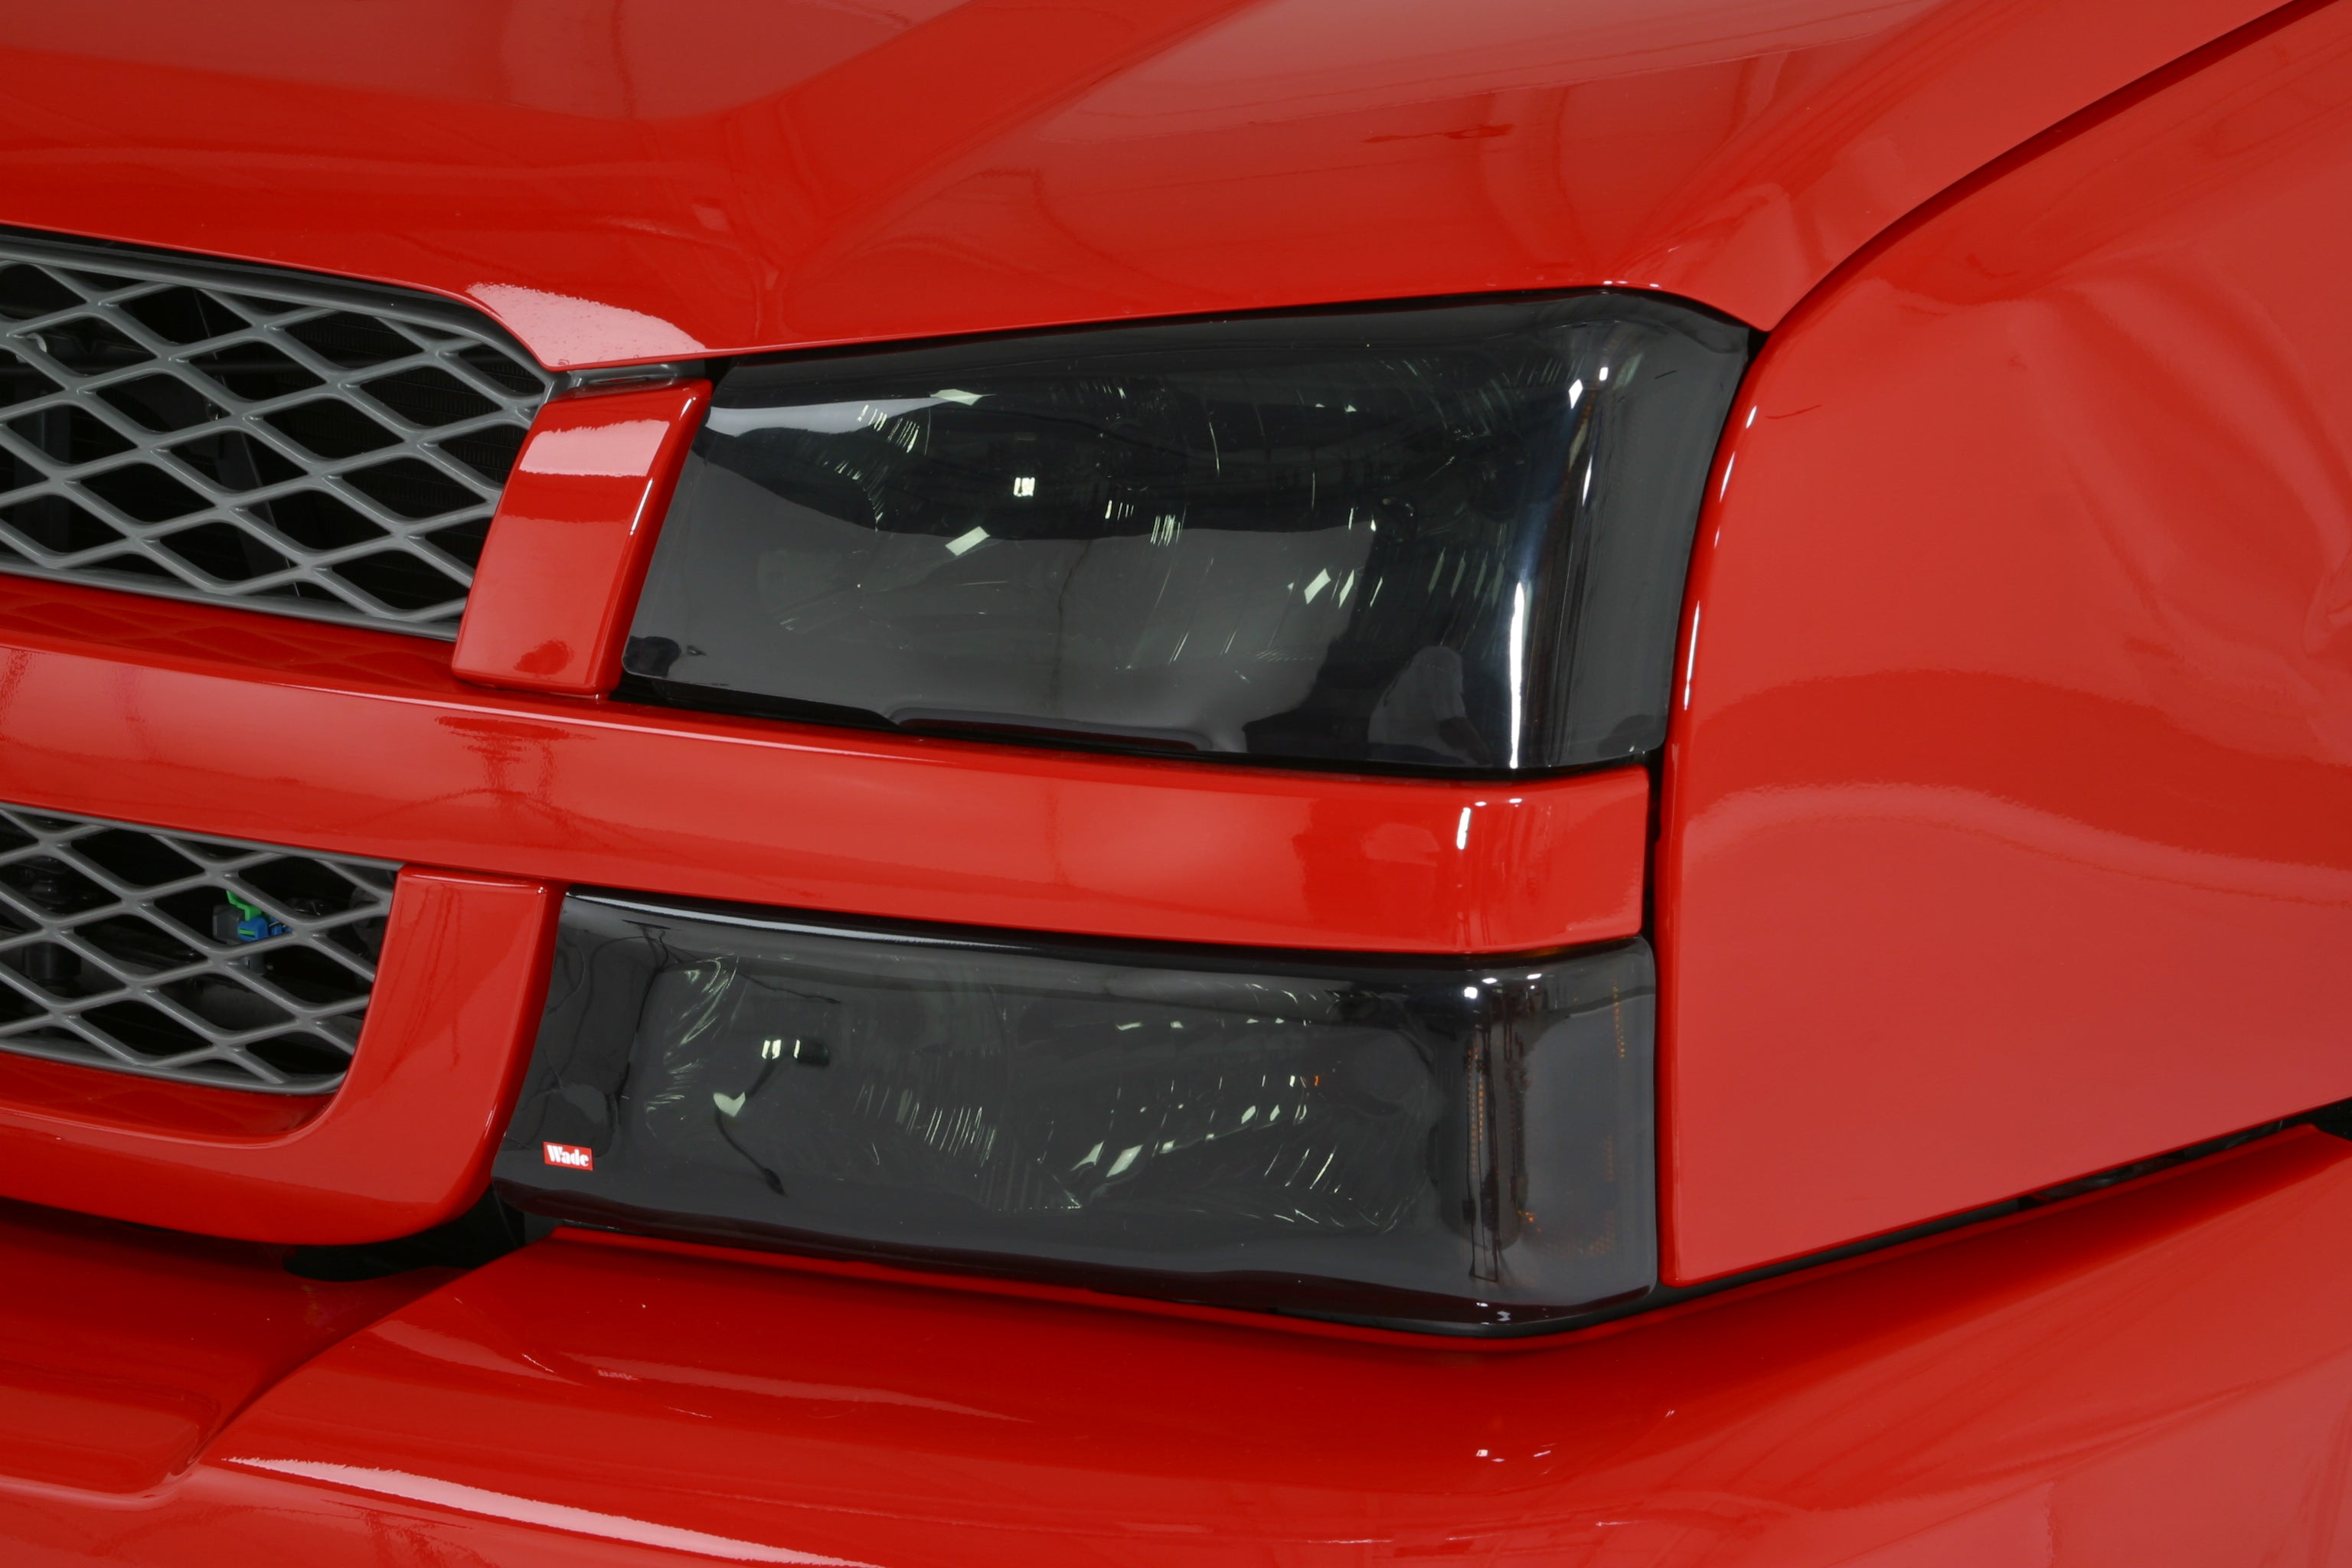 1989 Audi 5000 S Head Light Covers